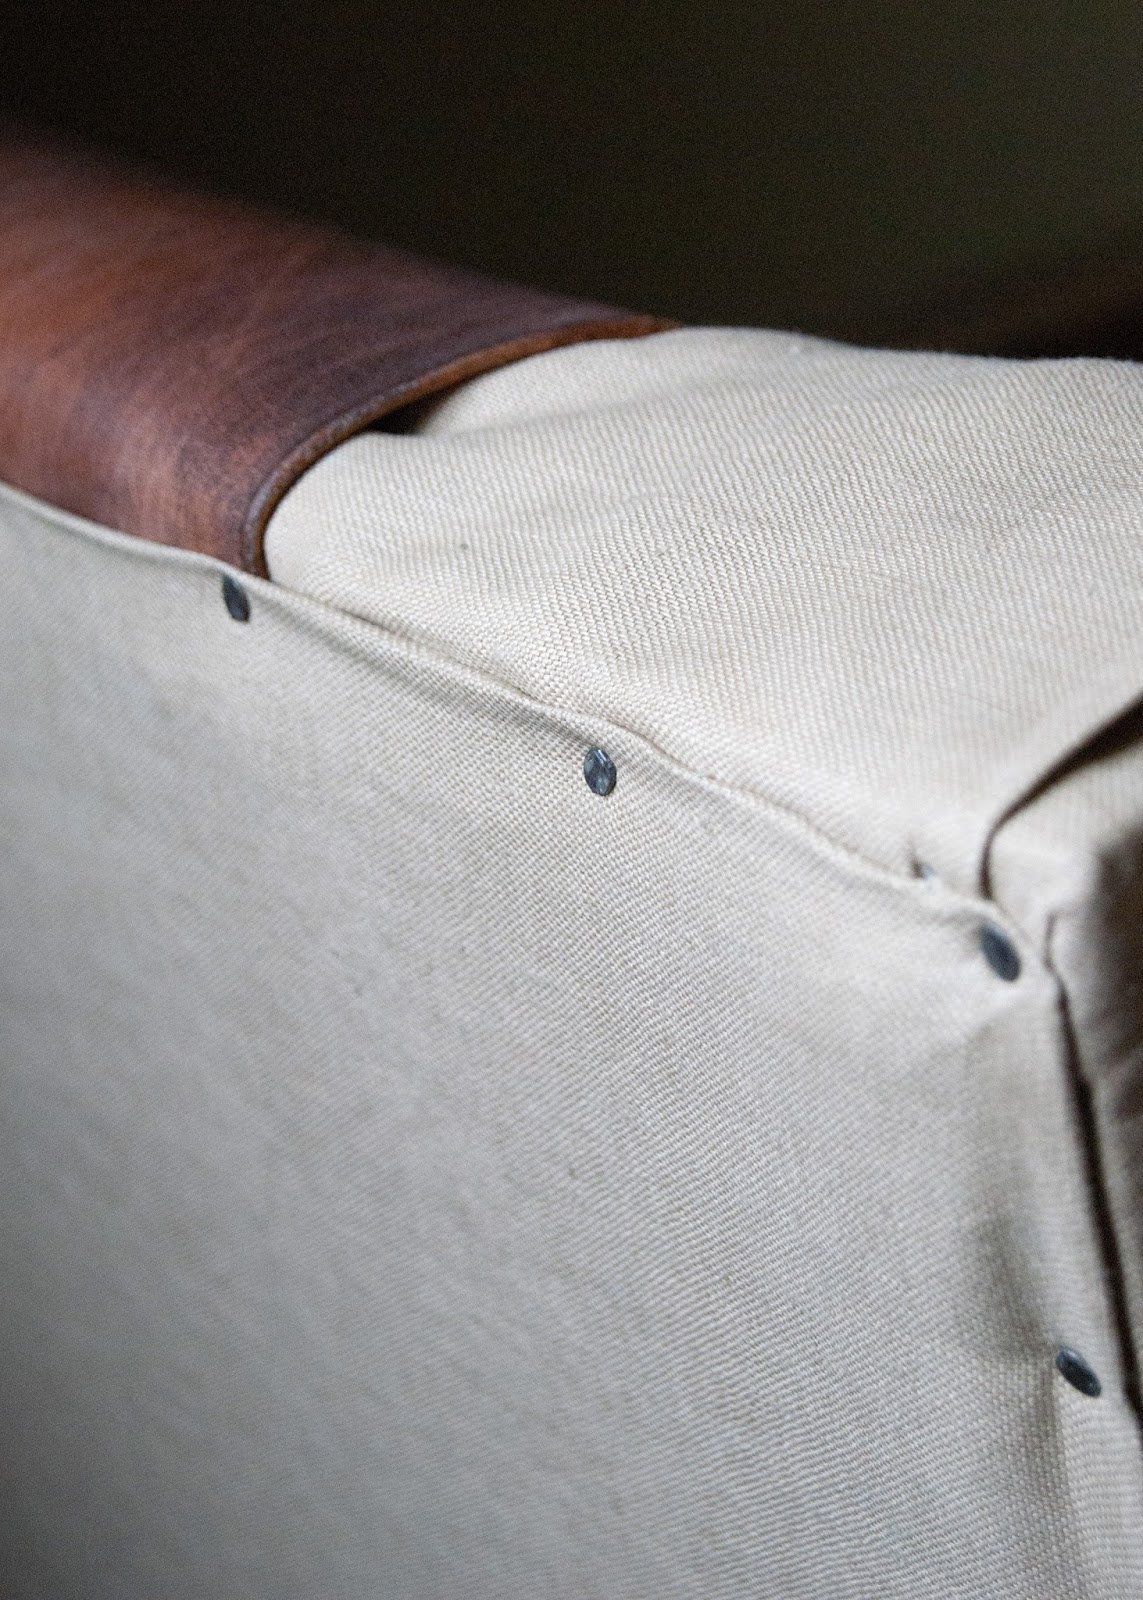 Close up of detail - leather, linen and nailheads.